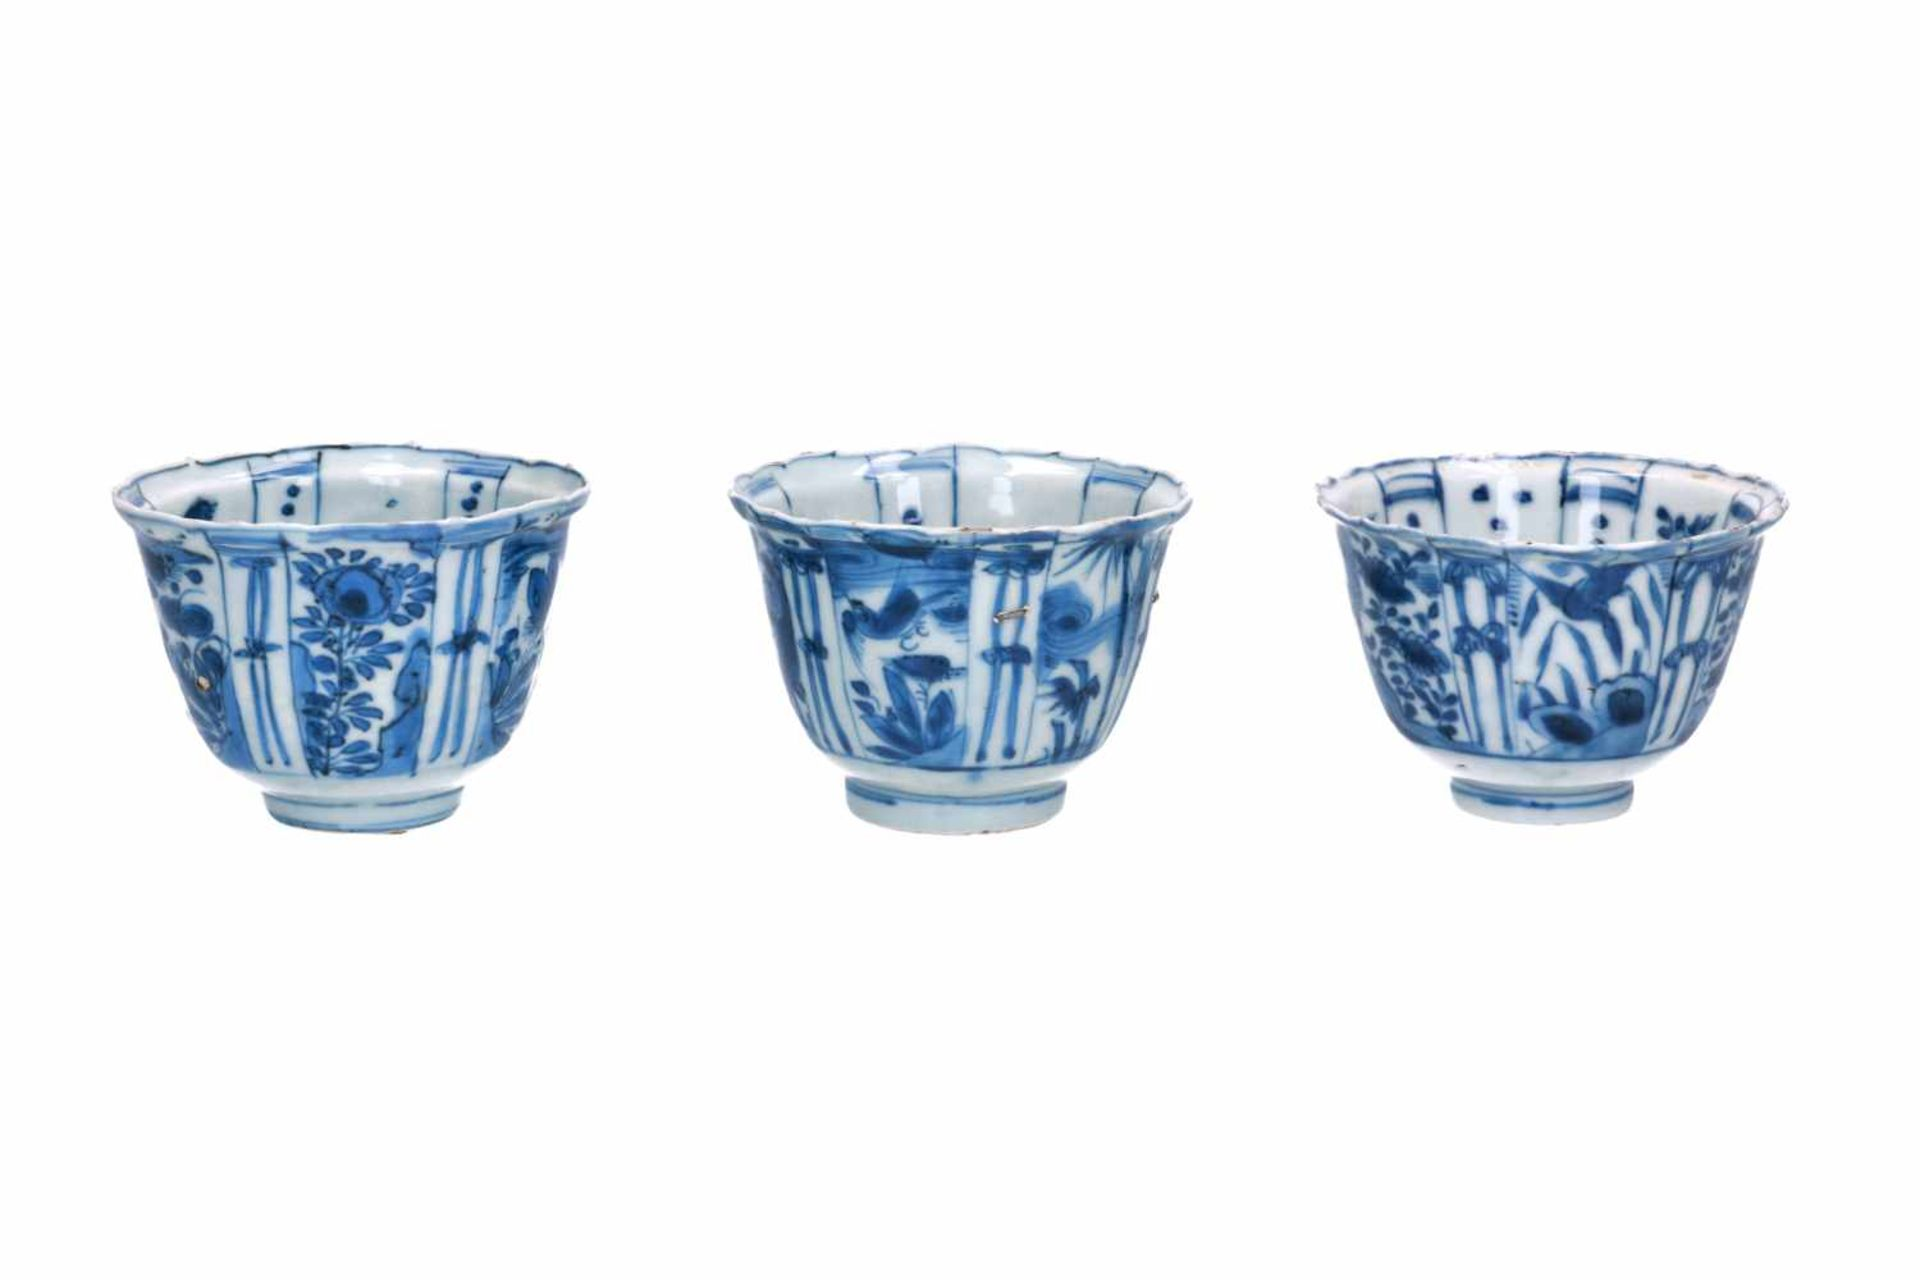 A lot of three blue and white porcelain bowls, decorated with flowers, birds and butterflies.